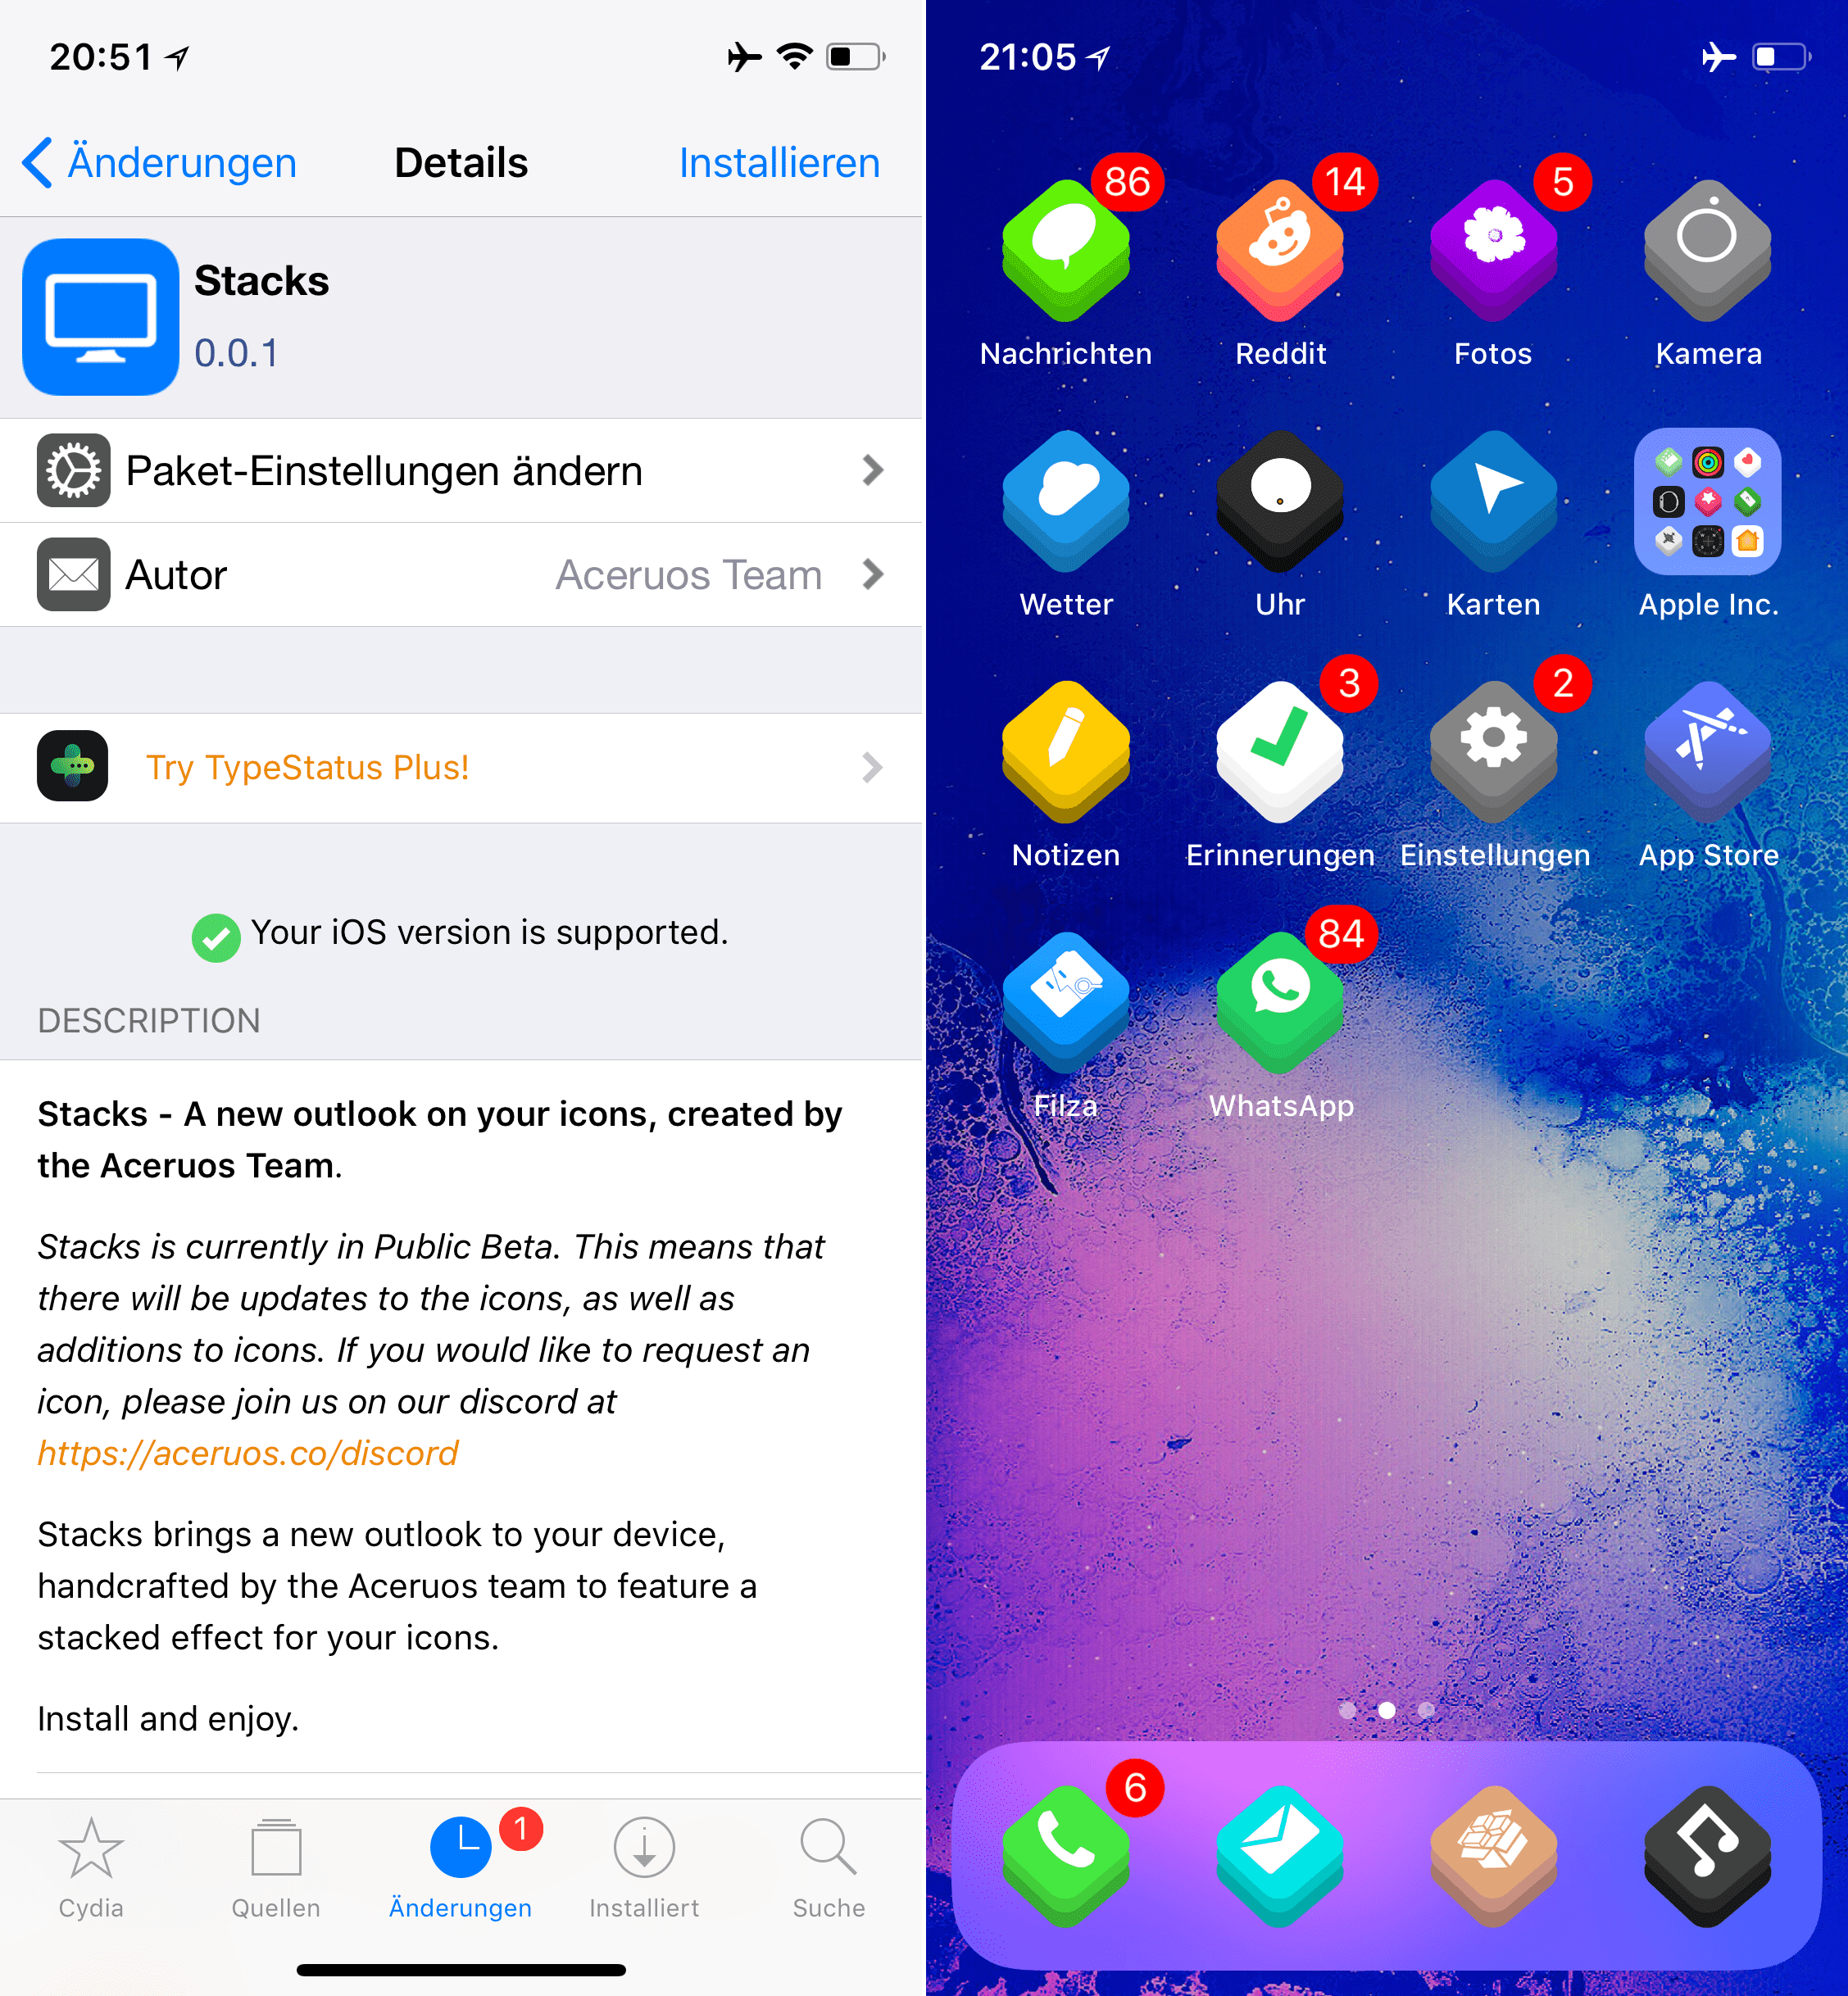 Top Cydia Tweaks: Snowboard, shuffle, ebullience and more – Issue 14